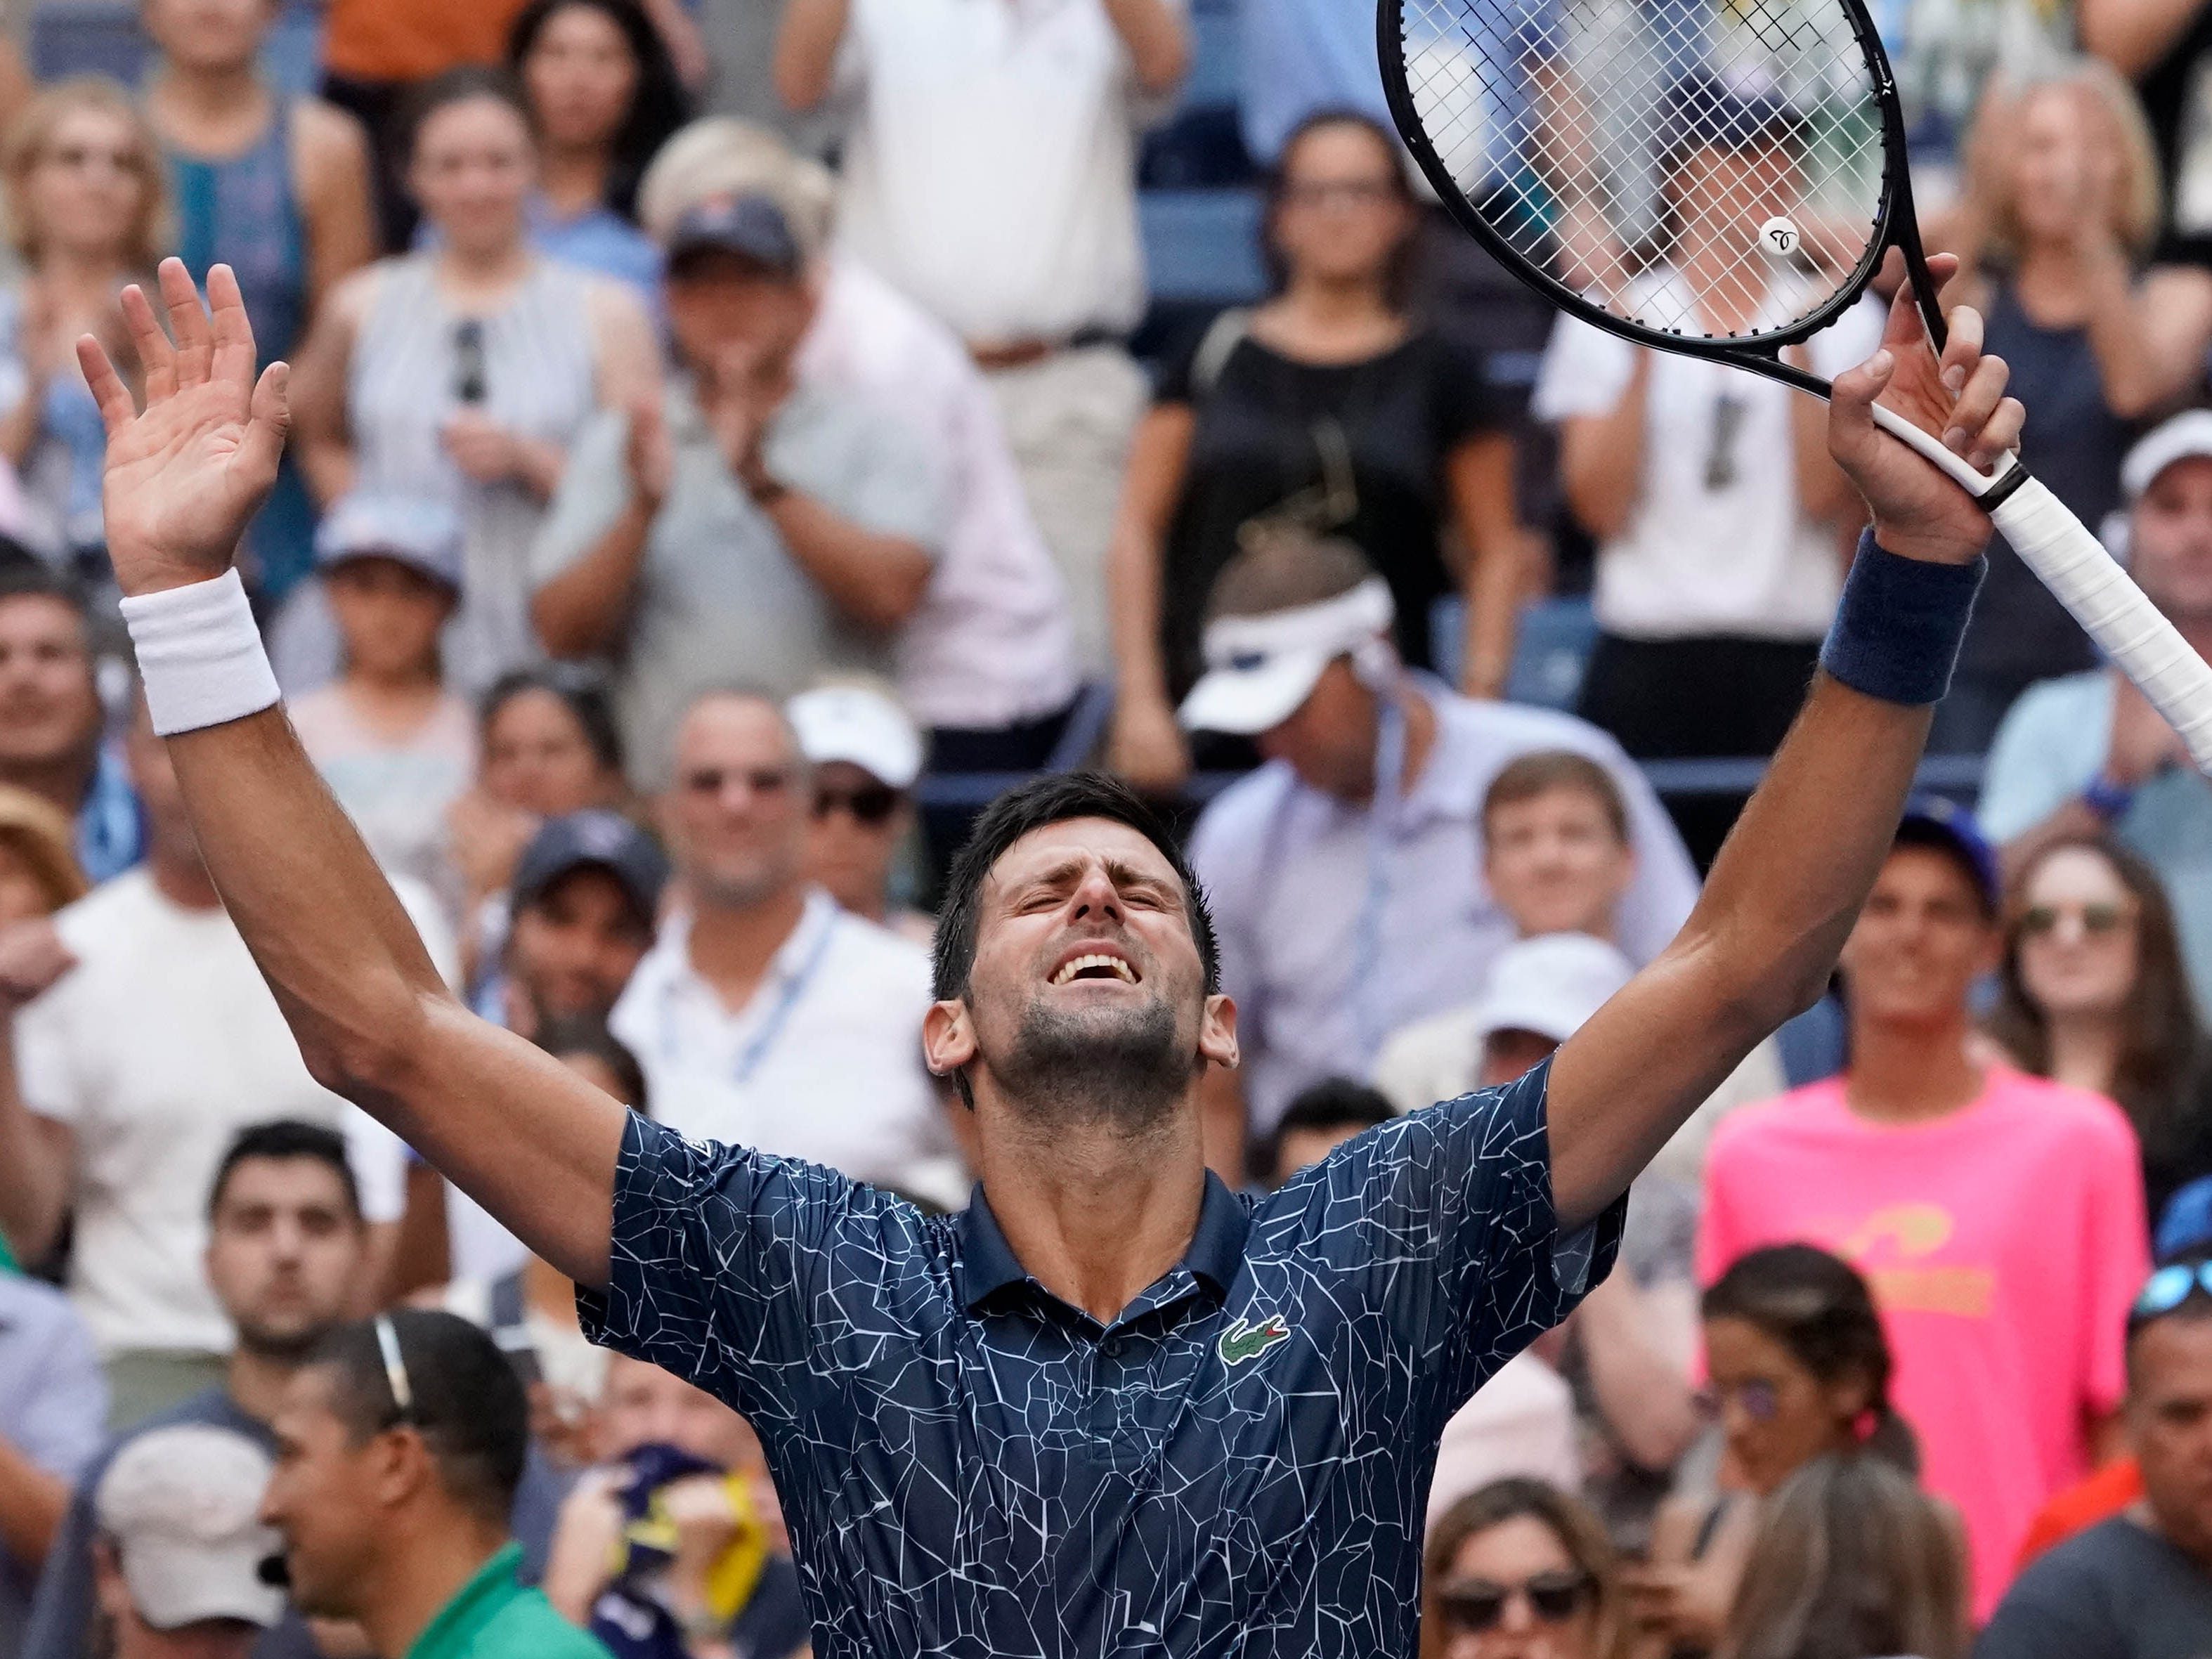 Novak Djokovic of Serbia exults after beating Joao Sousa of Portugal 6-3, 6-4, 6-3.